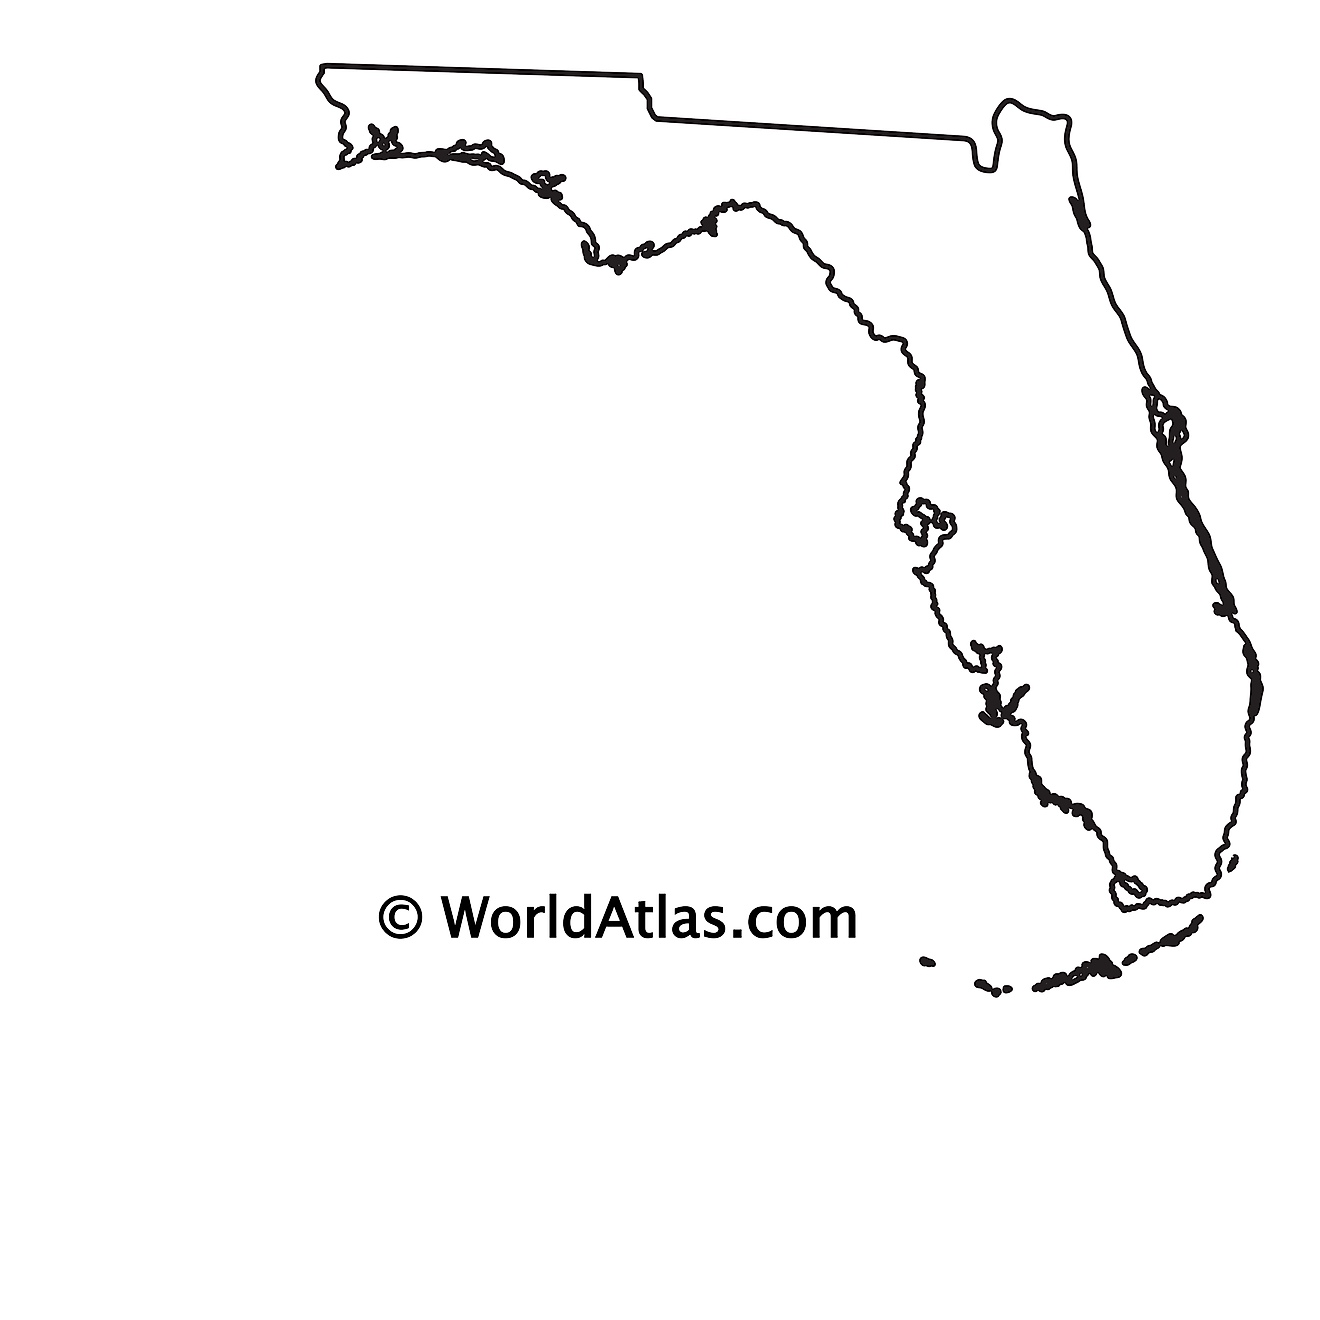 Blank Outline Map of Florida